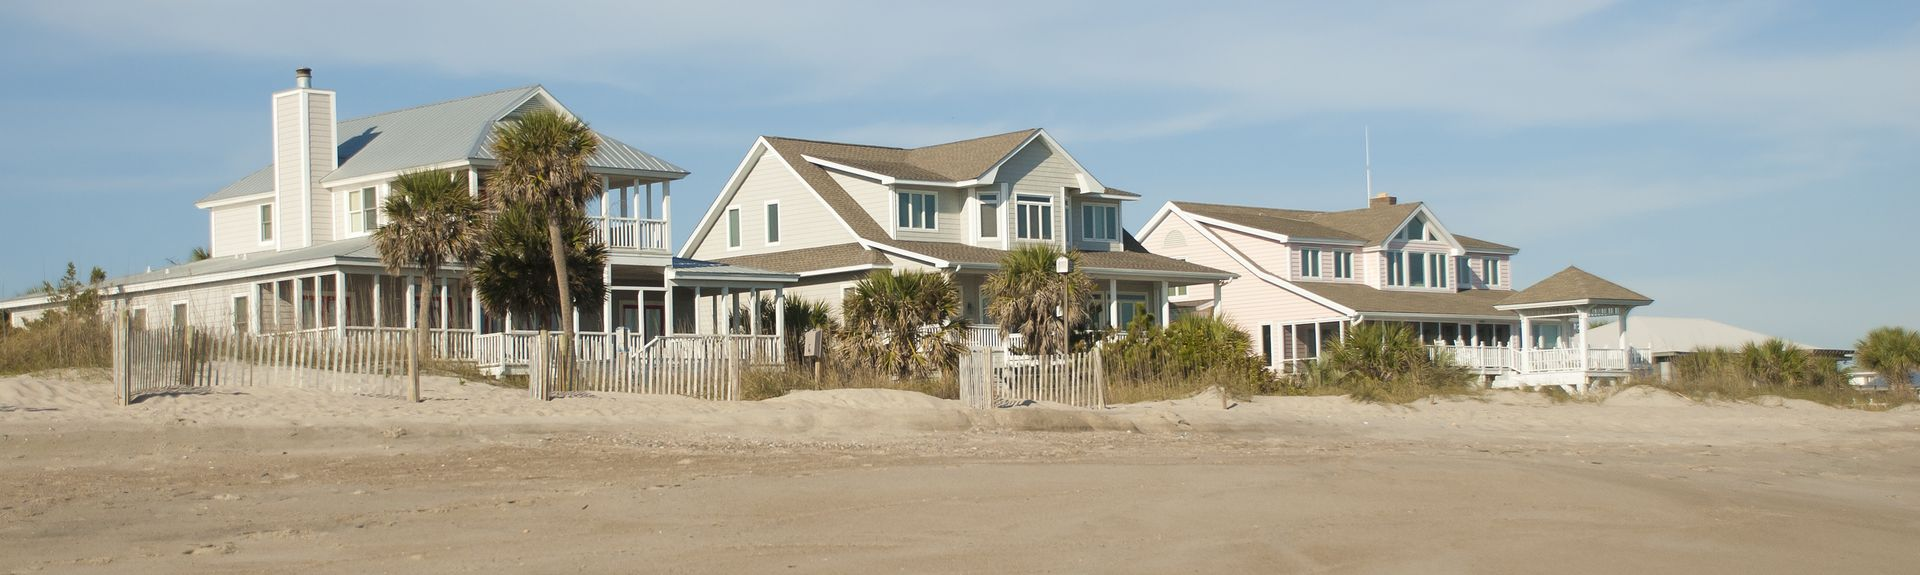 Brilliant Palmetto Dunes Hilton Head Island Vacation Rentals For 2019 Download Free Architecture Designs Grimeyleaguecom